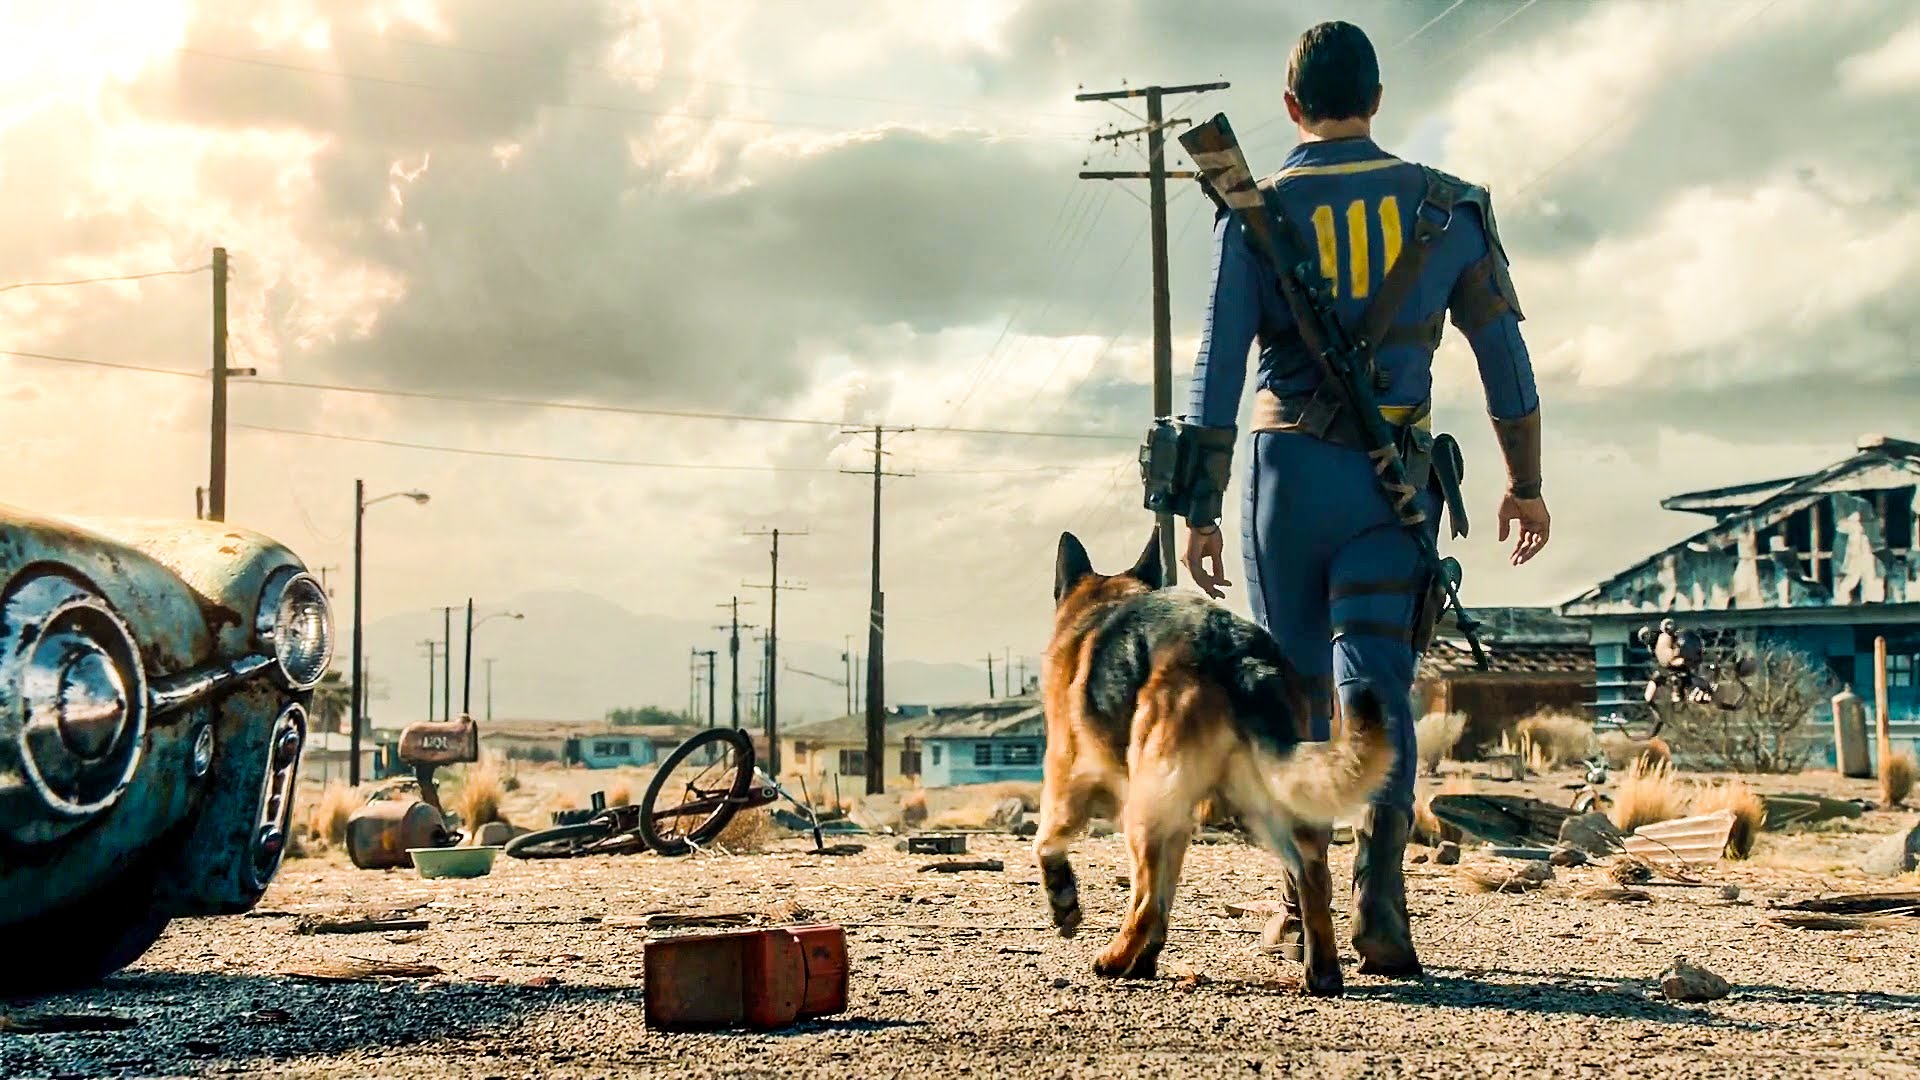 Fallout 4 - Fallout 4 Арт, фоллаут4